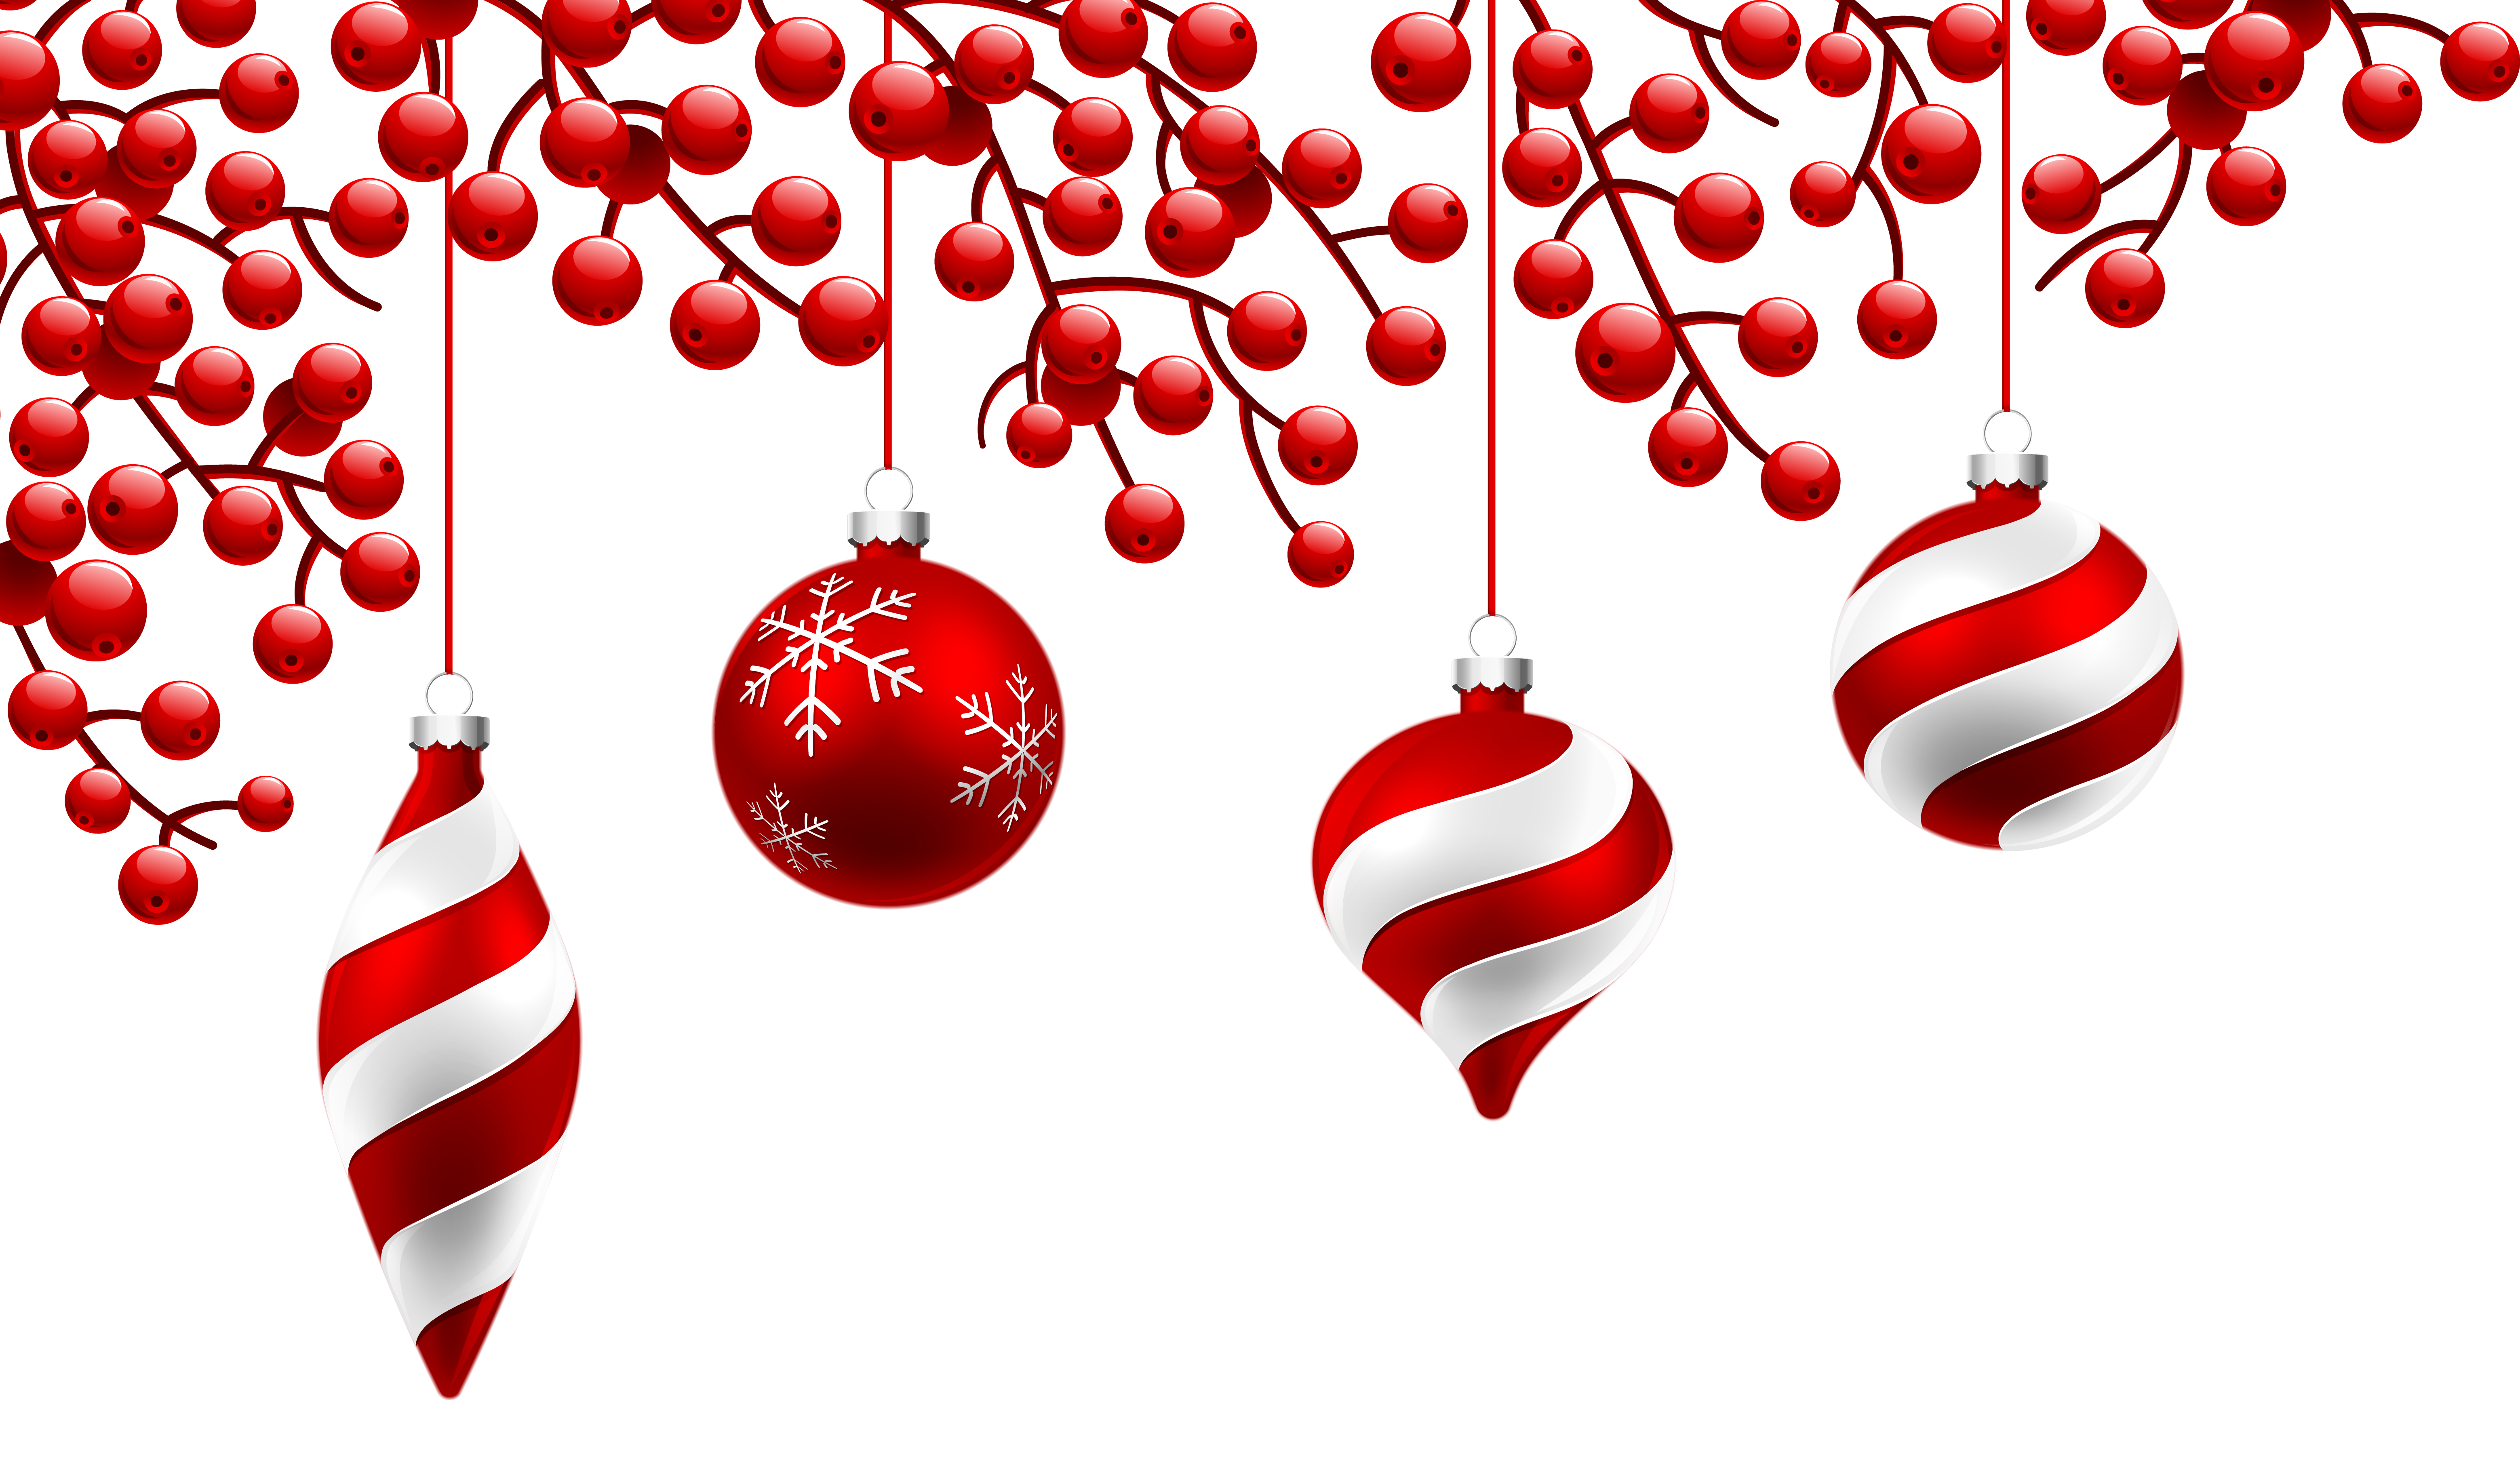 Red christmas decoration png. Clipart wedding ornament